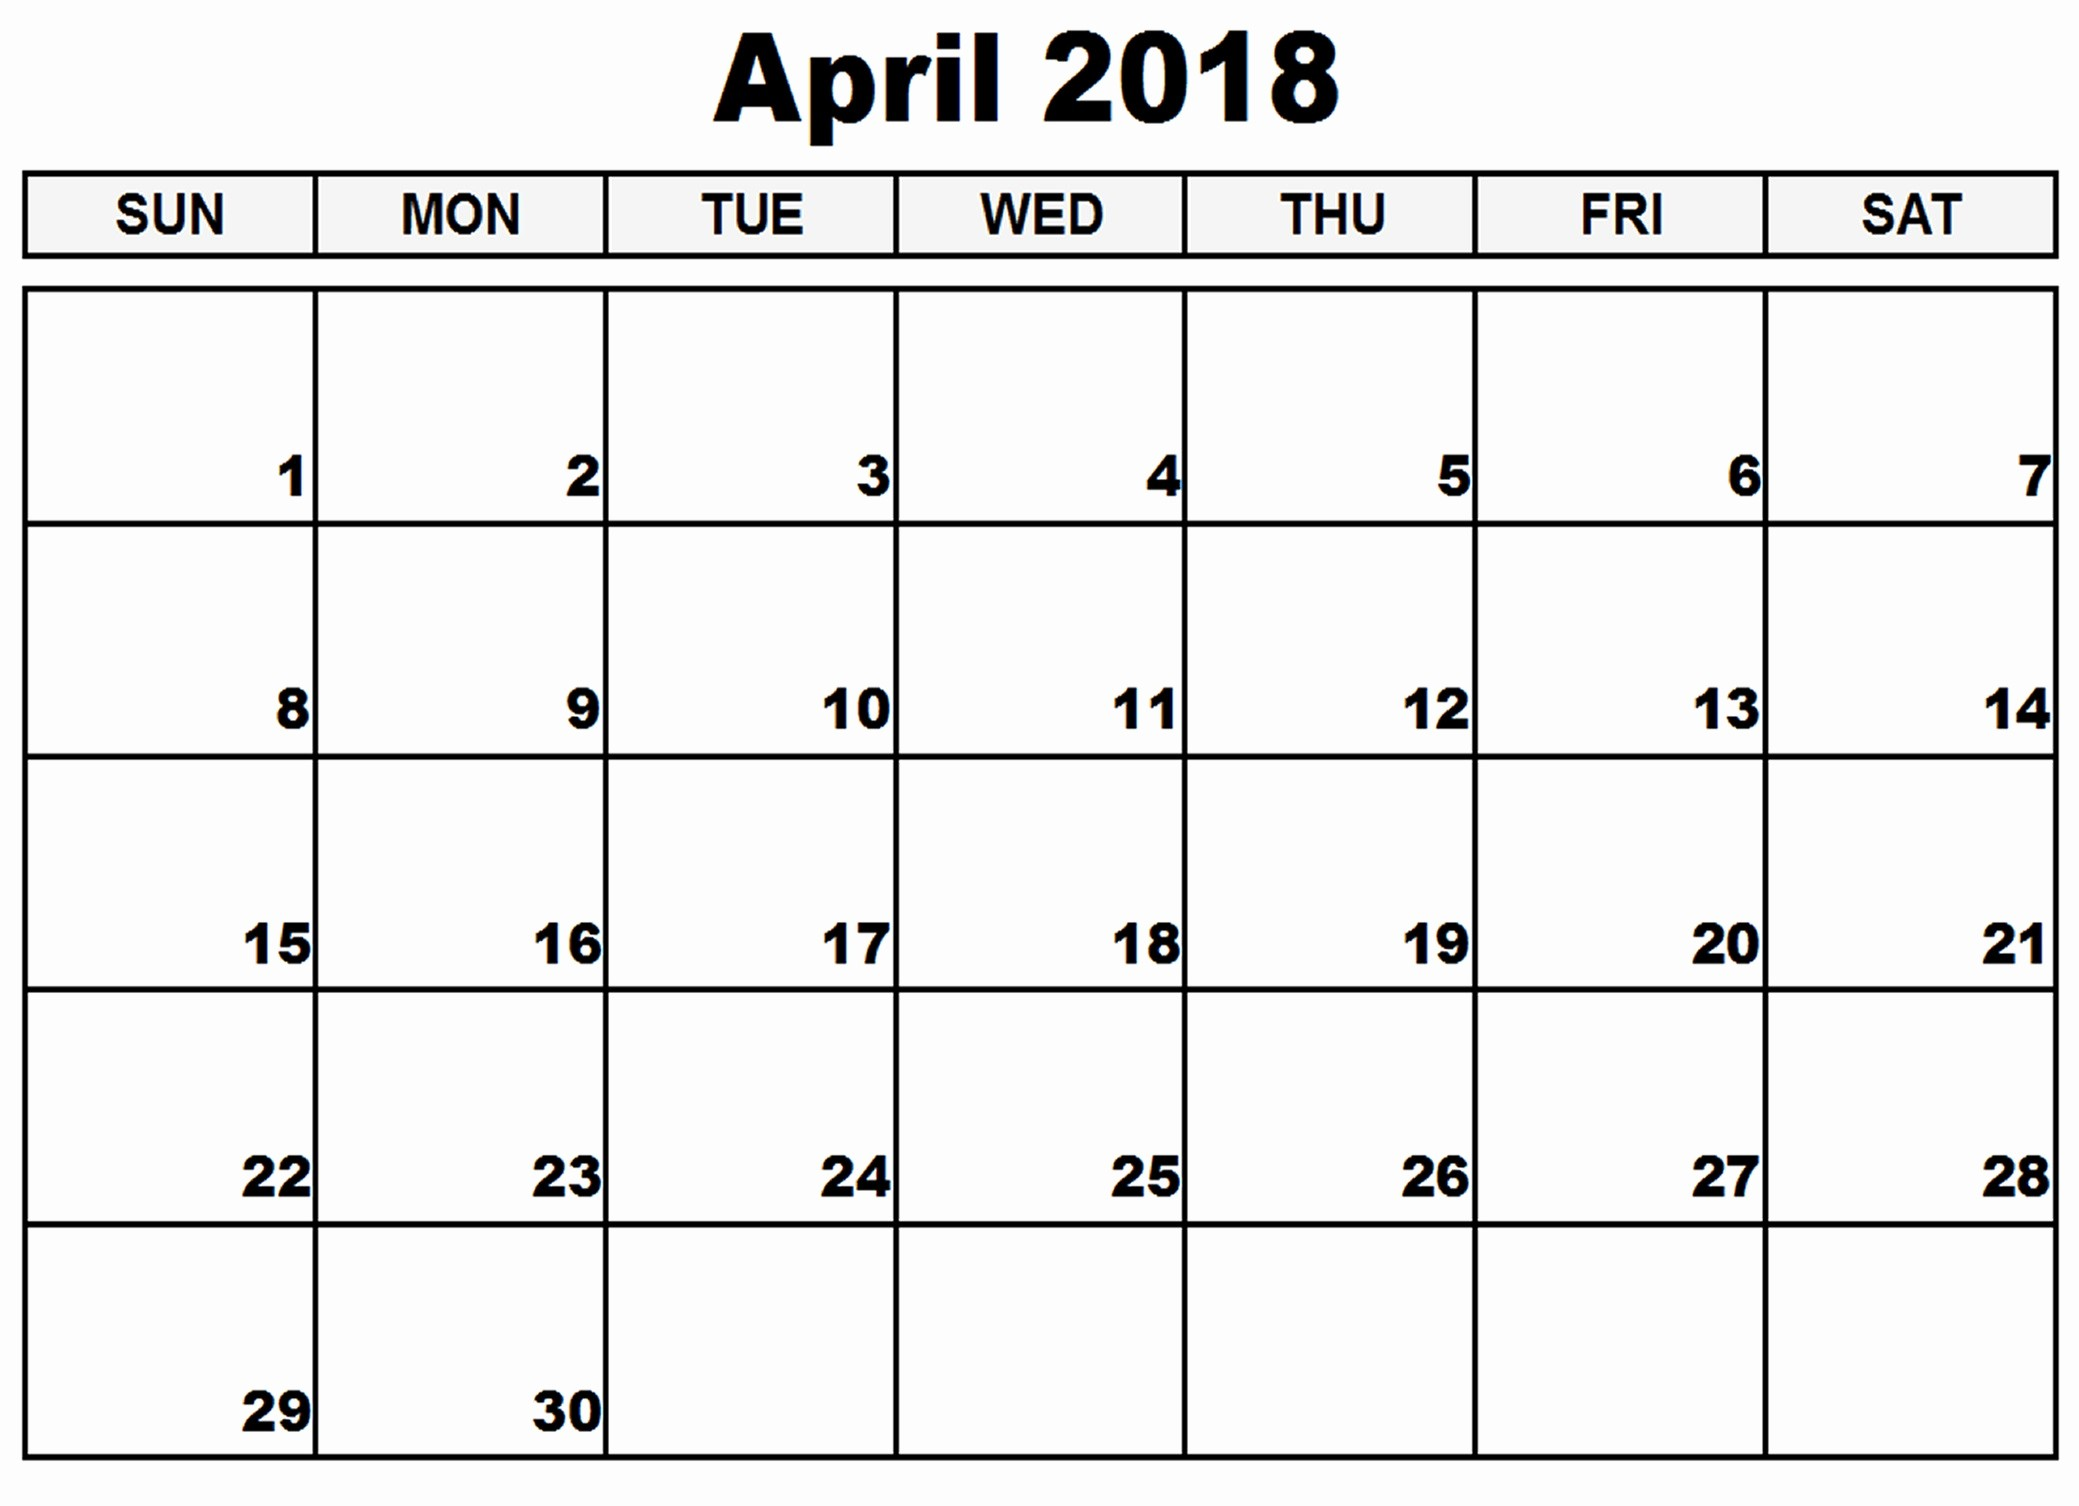 Blank April 2018 Calendar Template Awesome Blank April 2018 Calendar Template Printable